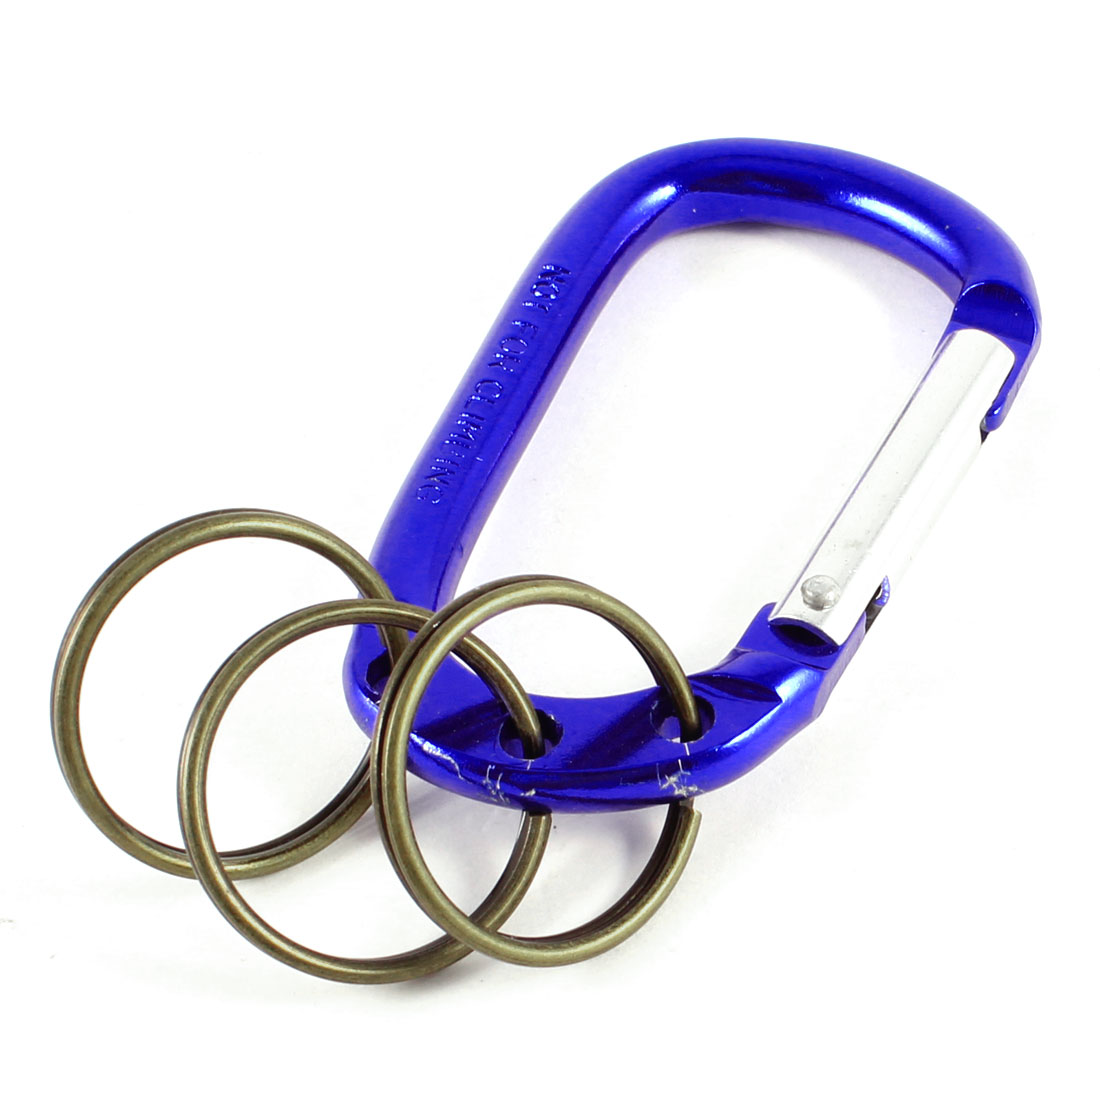 Navy Blue 3-Split Rings Spring Loaded Gate Aluminum Alloy Carabiner Keyring Key Chain